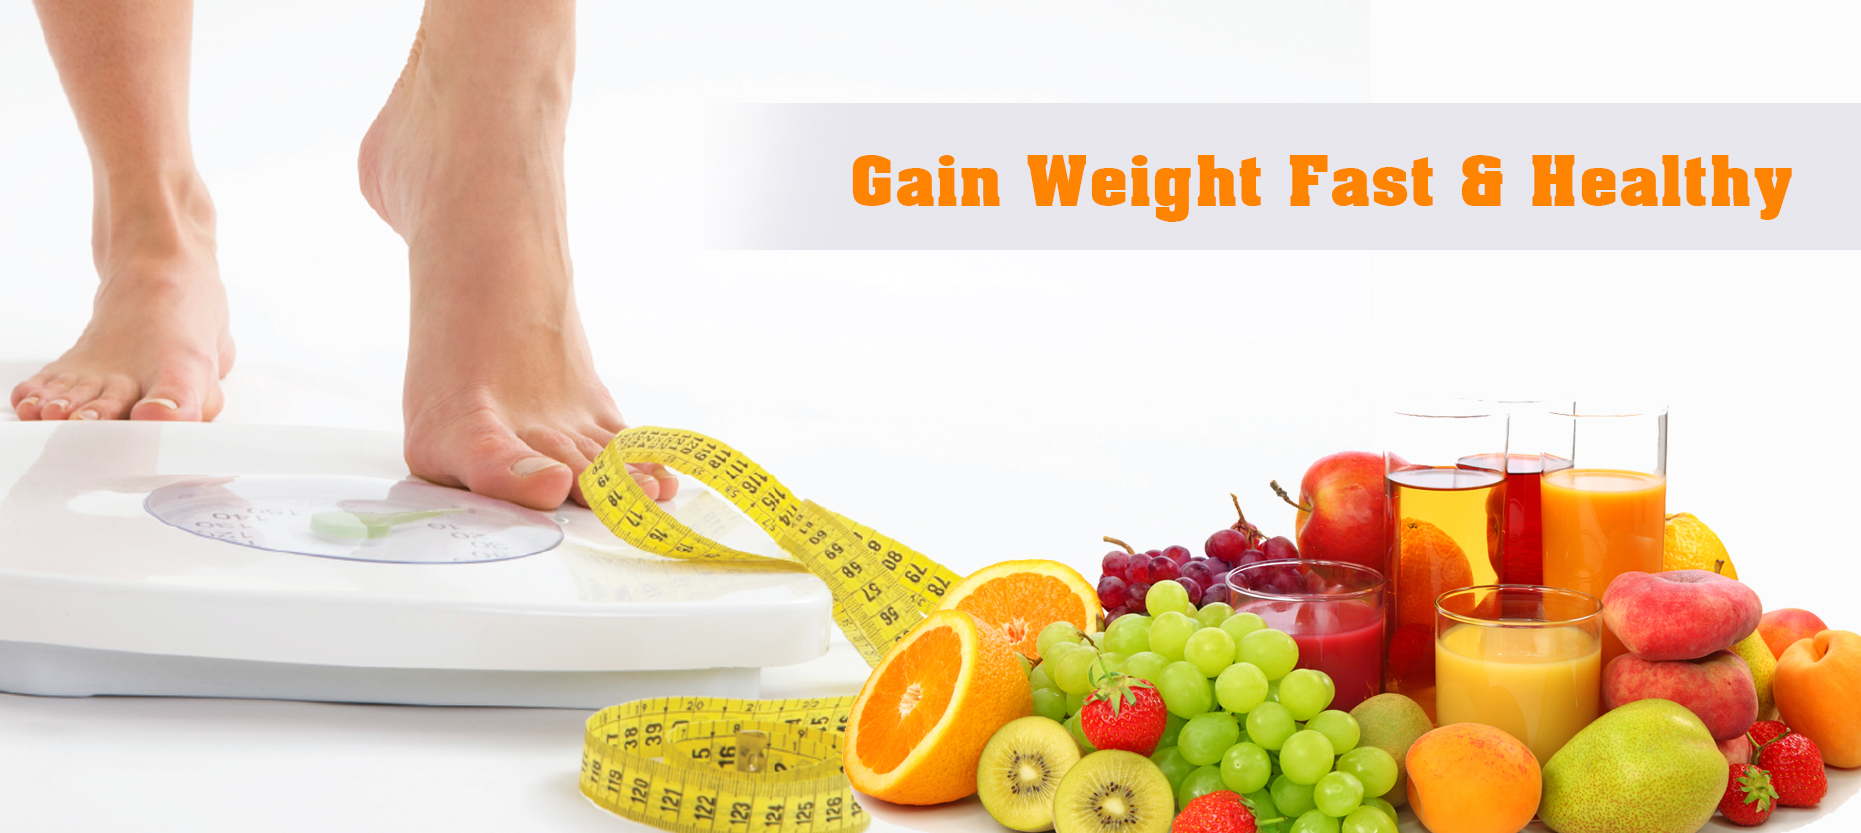 Best Healthy Foods to Gain Weight Fast and Safely